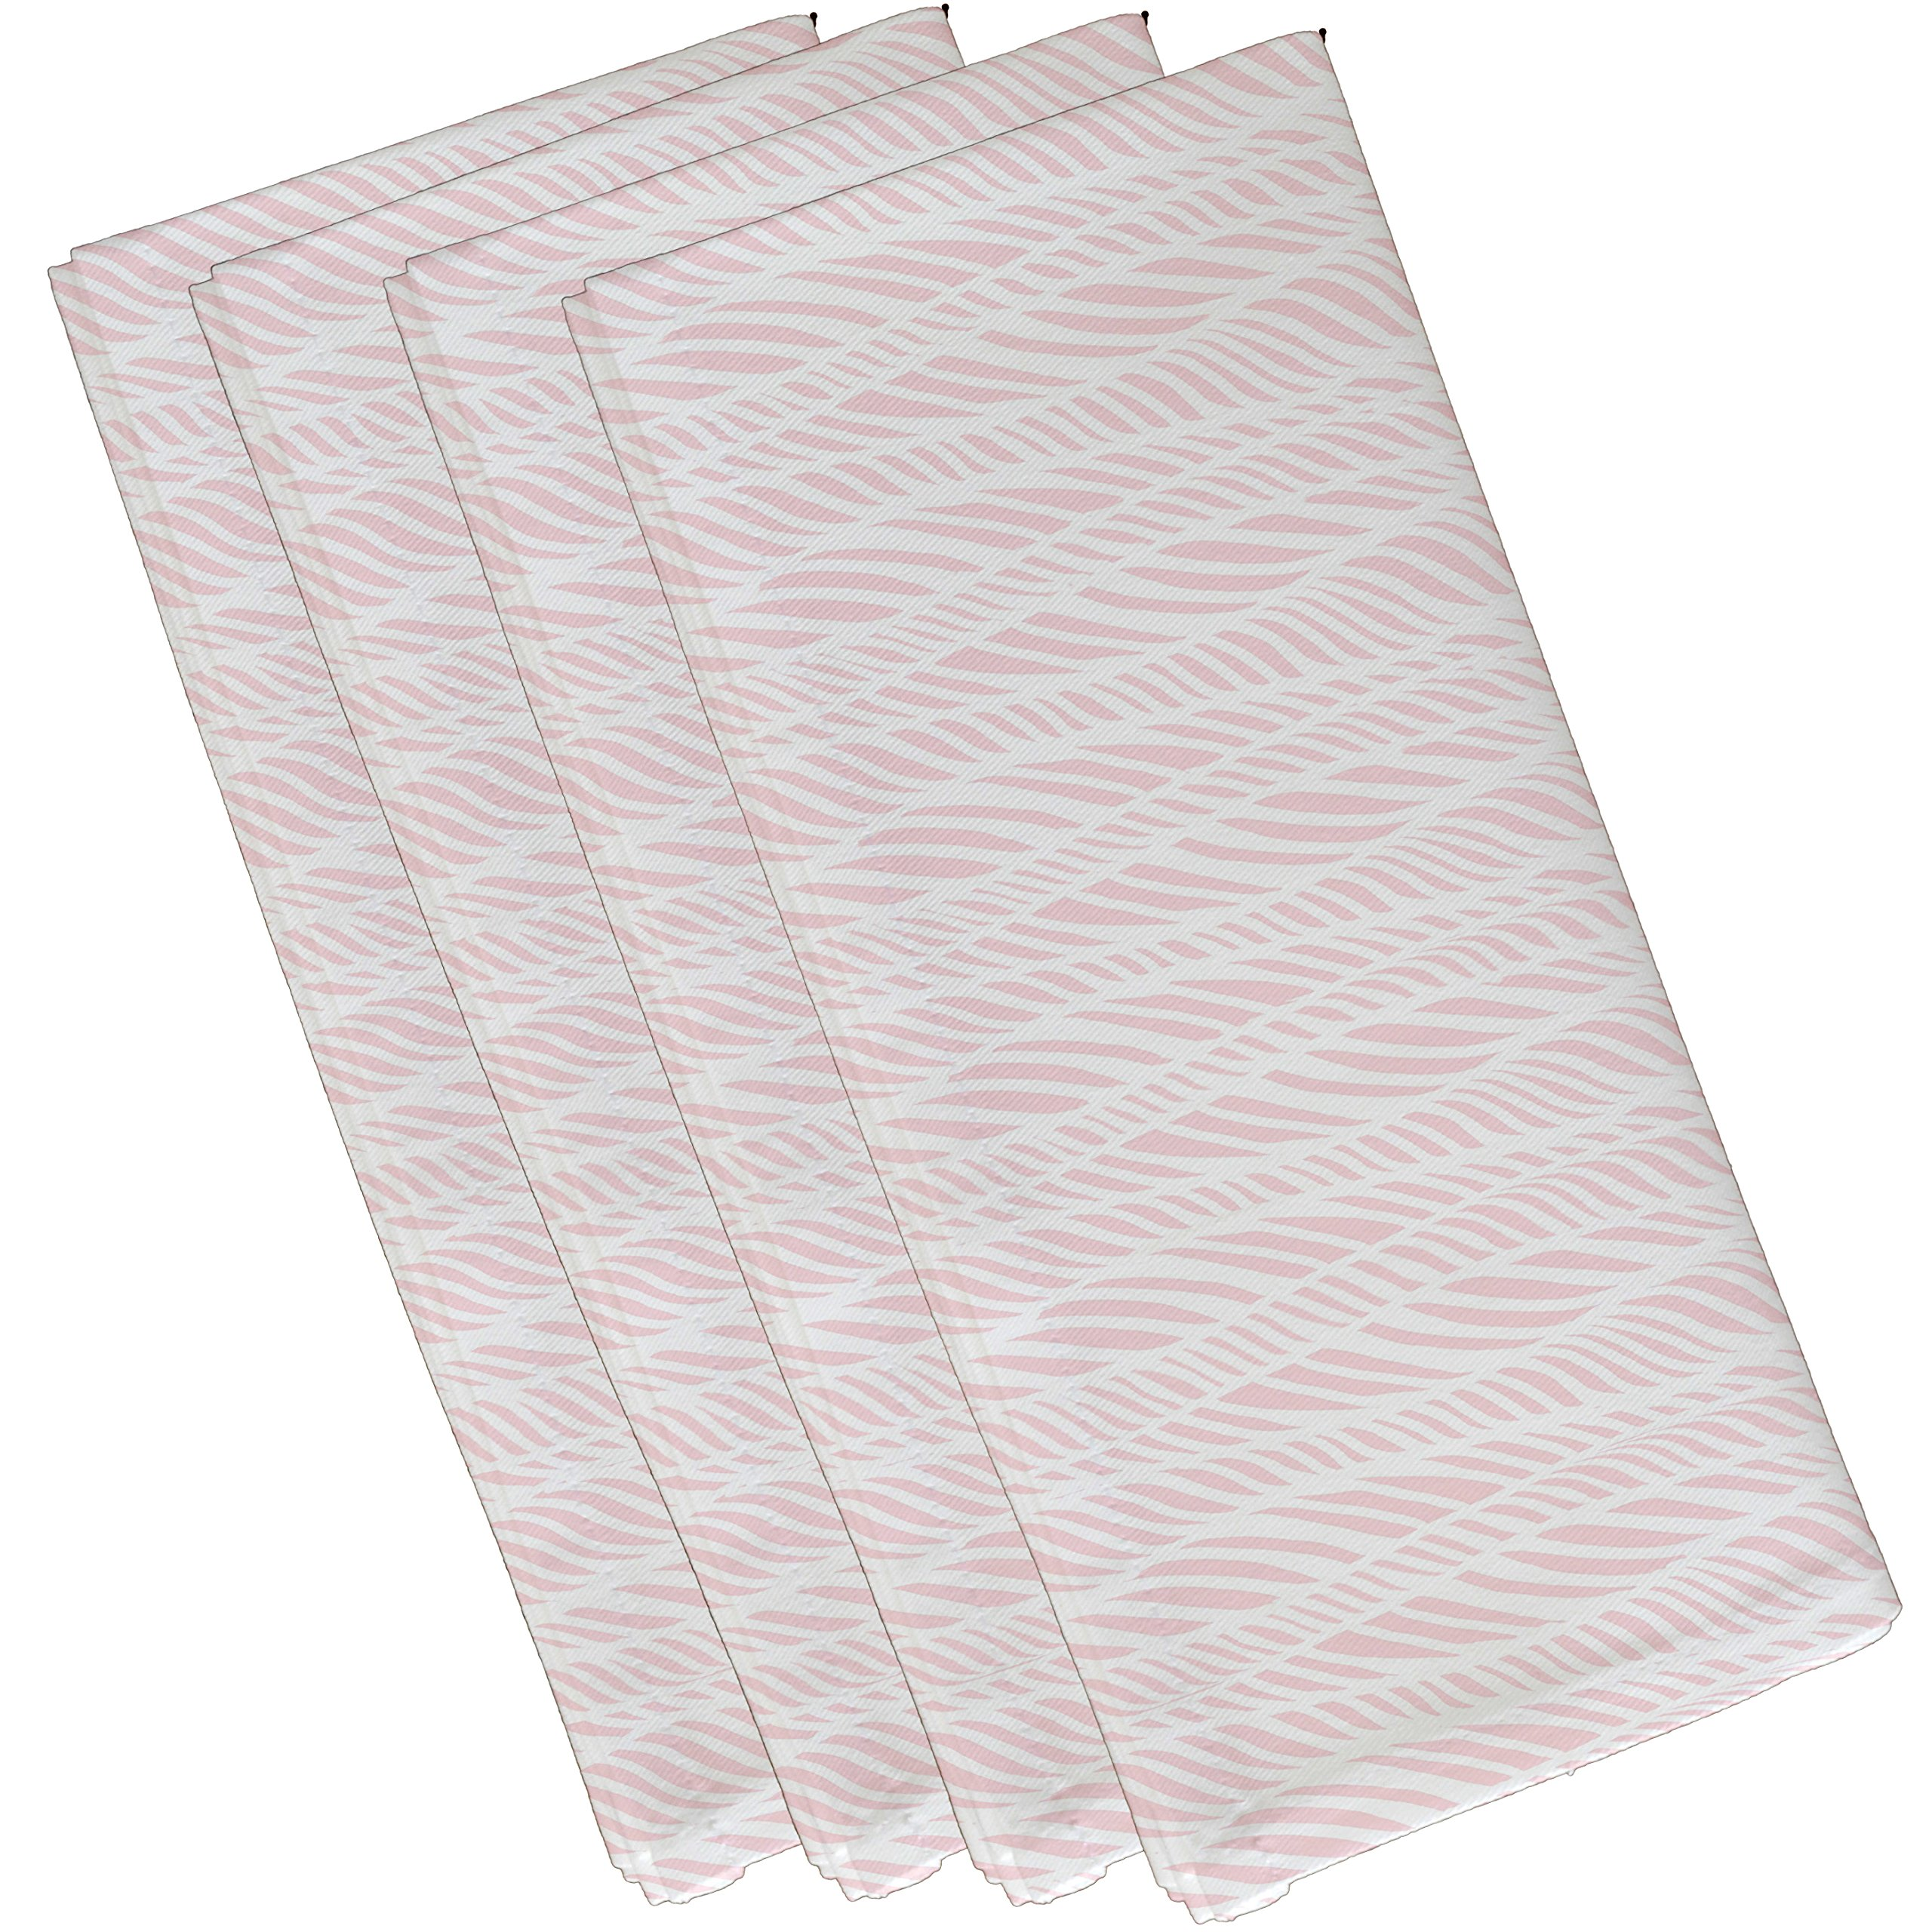 E by design N4G769PK6 Rolling Waves Geometric Print Napkin (Set of 4), 19'' x 19'', Pink by E by design